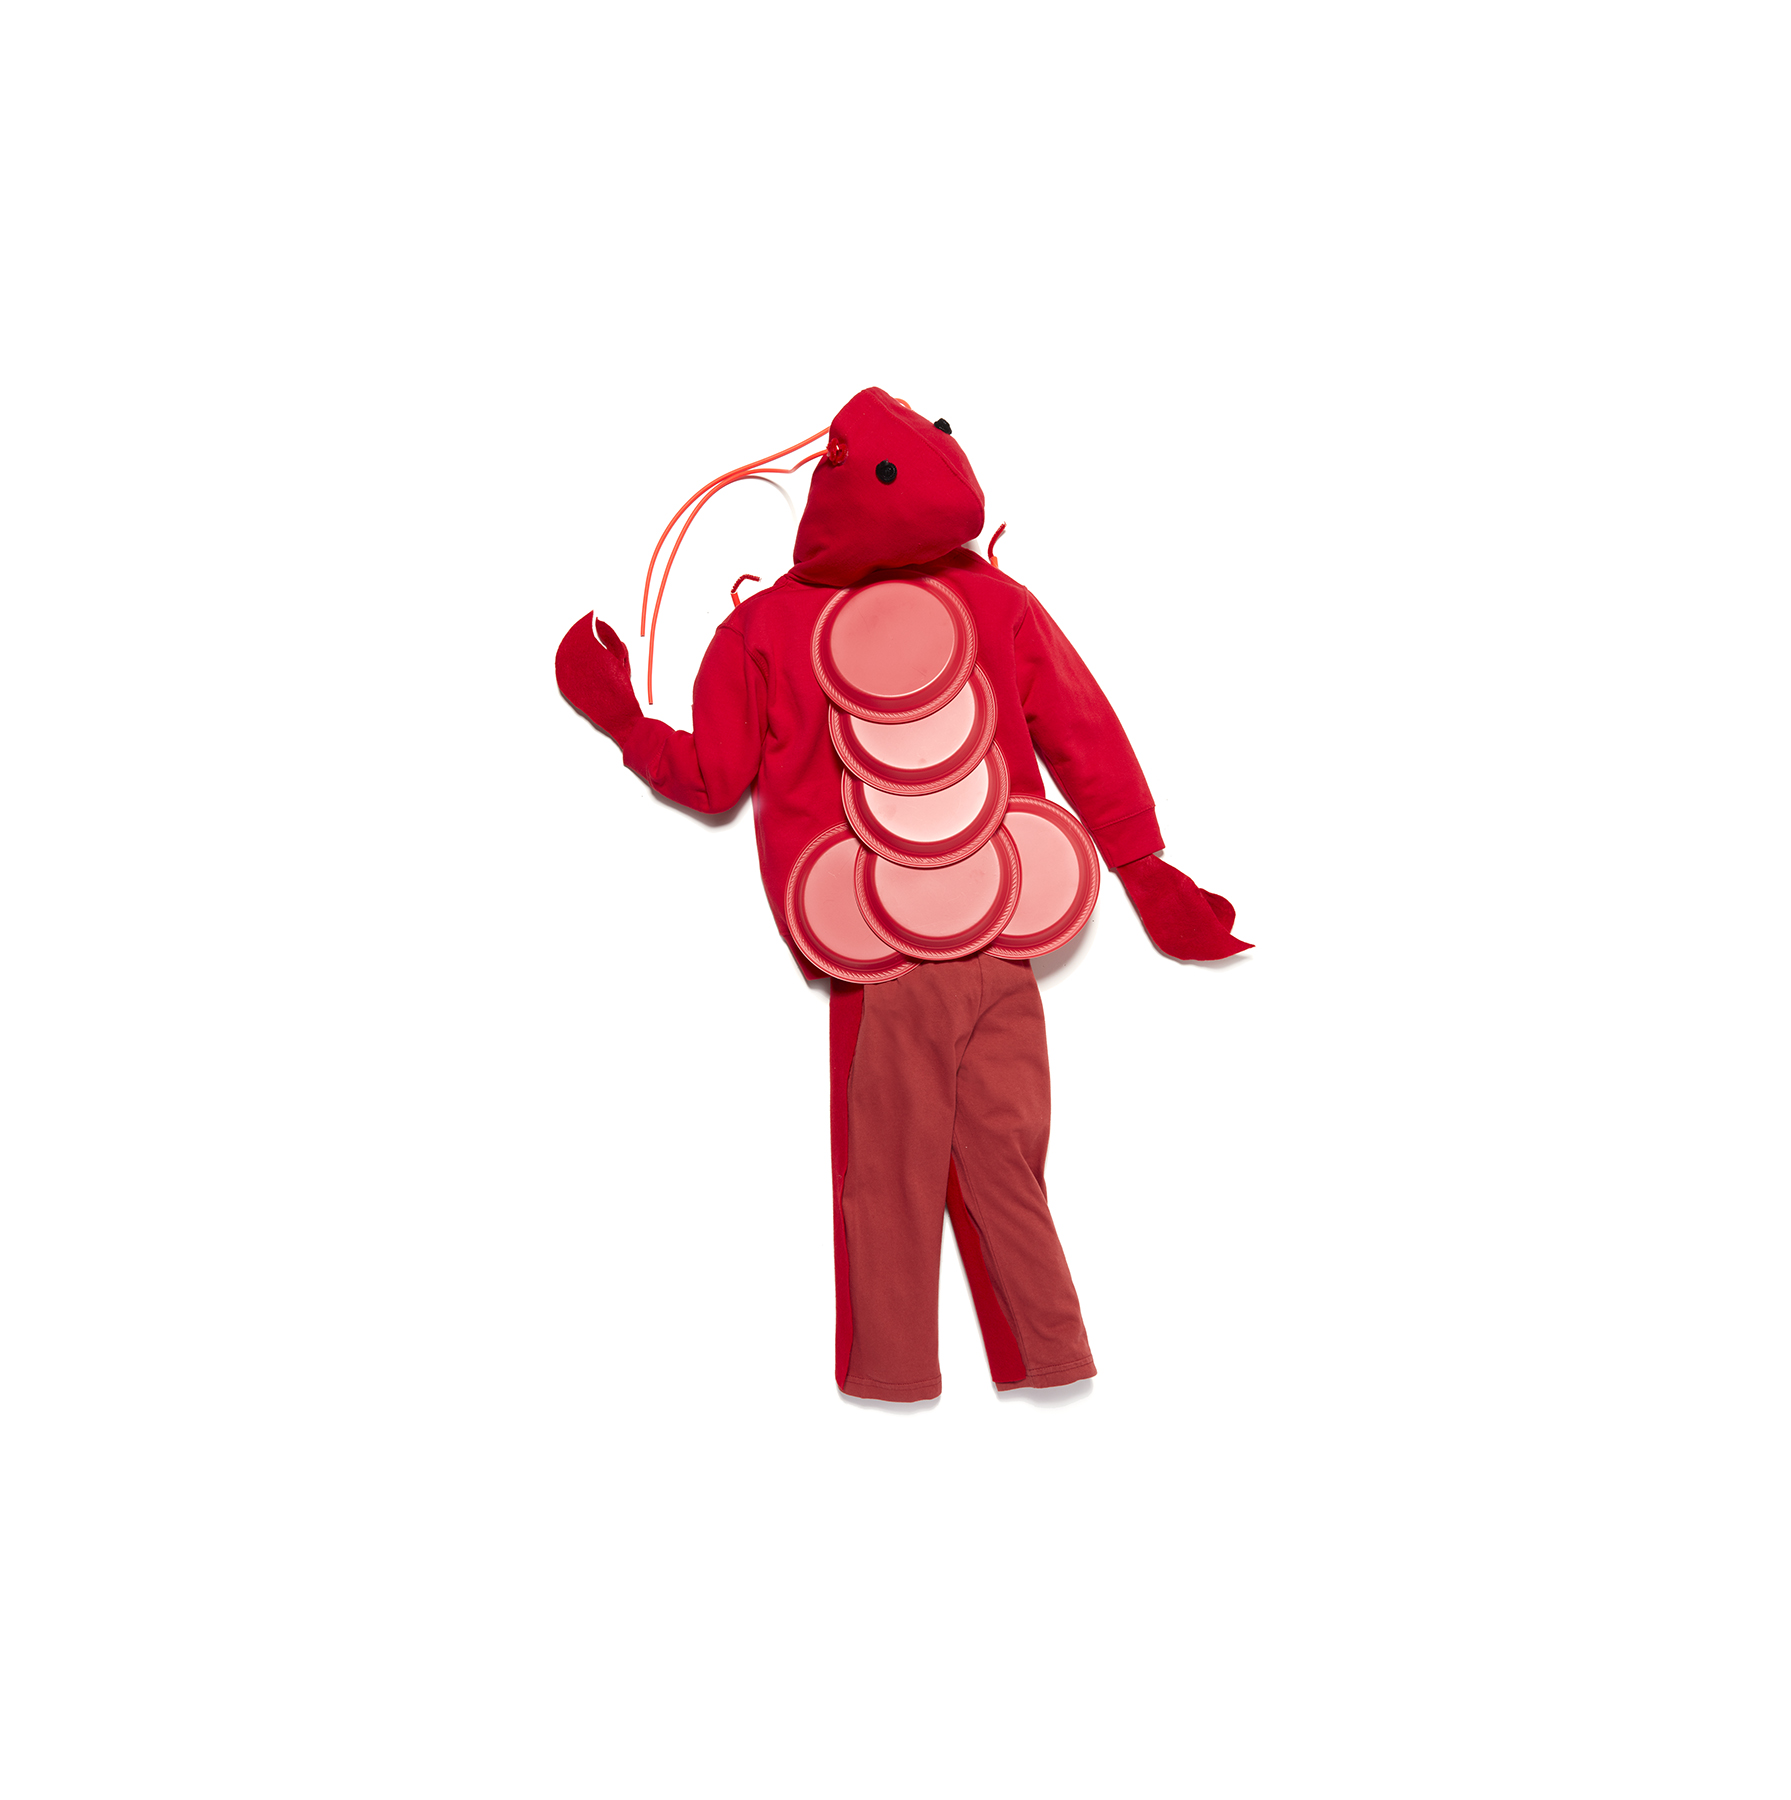 Lobster costume  sc 1 st  Real Simple & Group Halloween Costumes | Real Simple